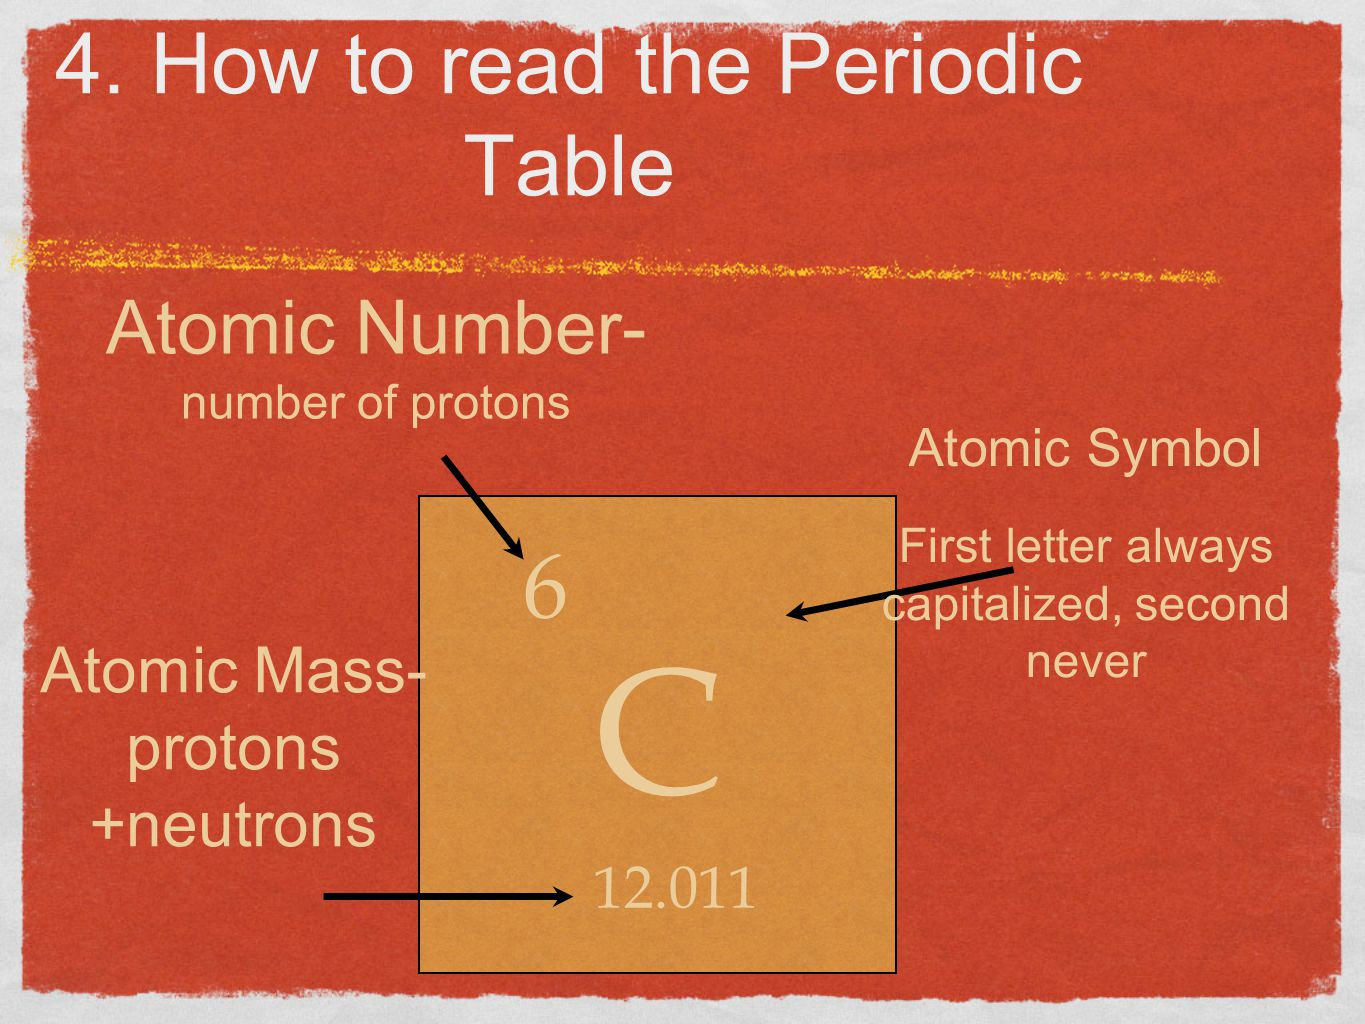 4. How to read the Periodic Table